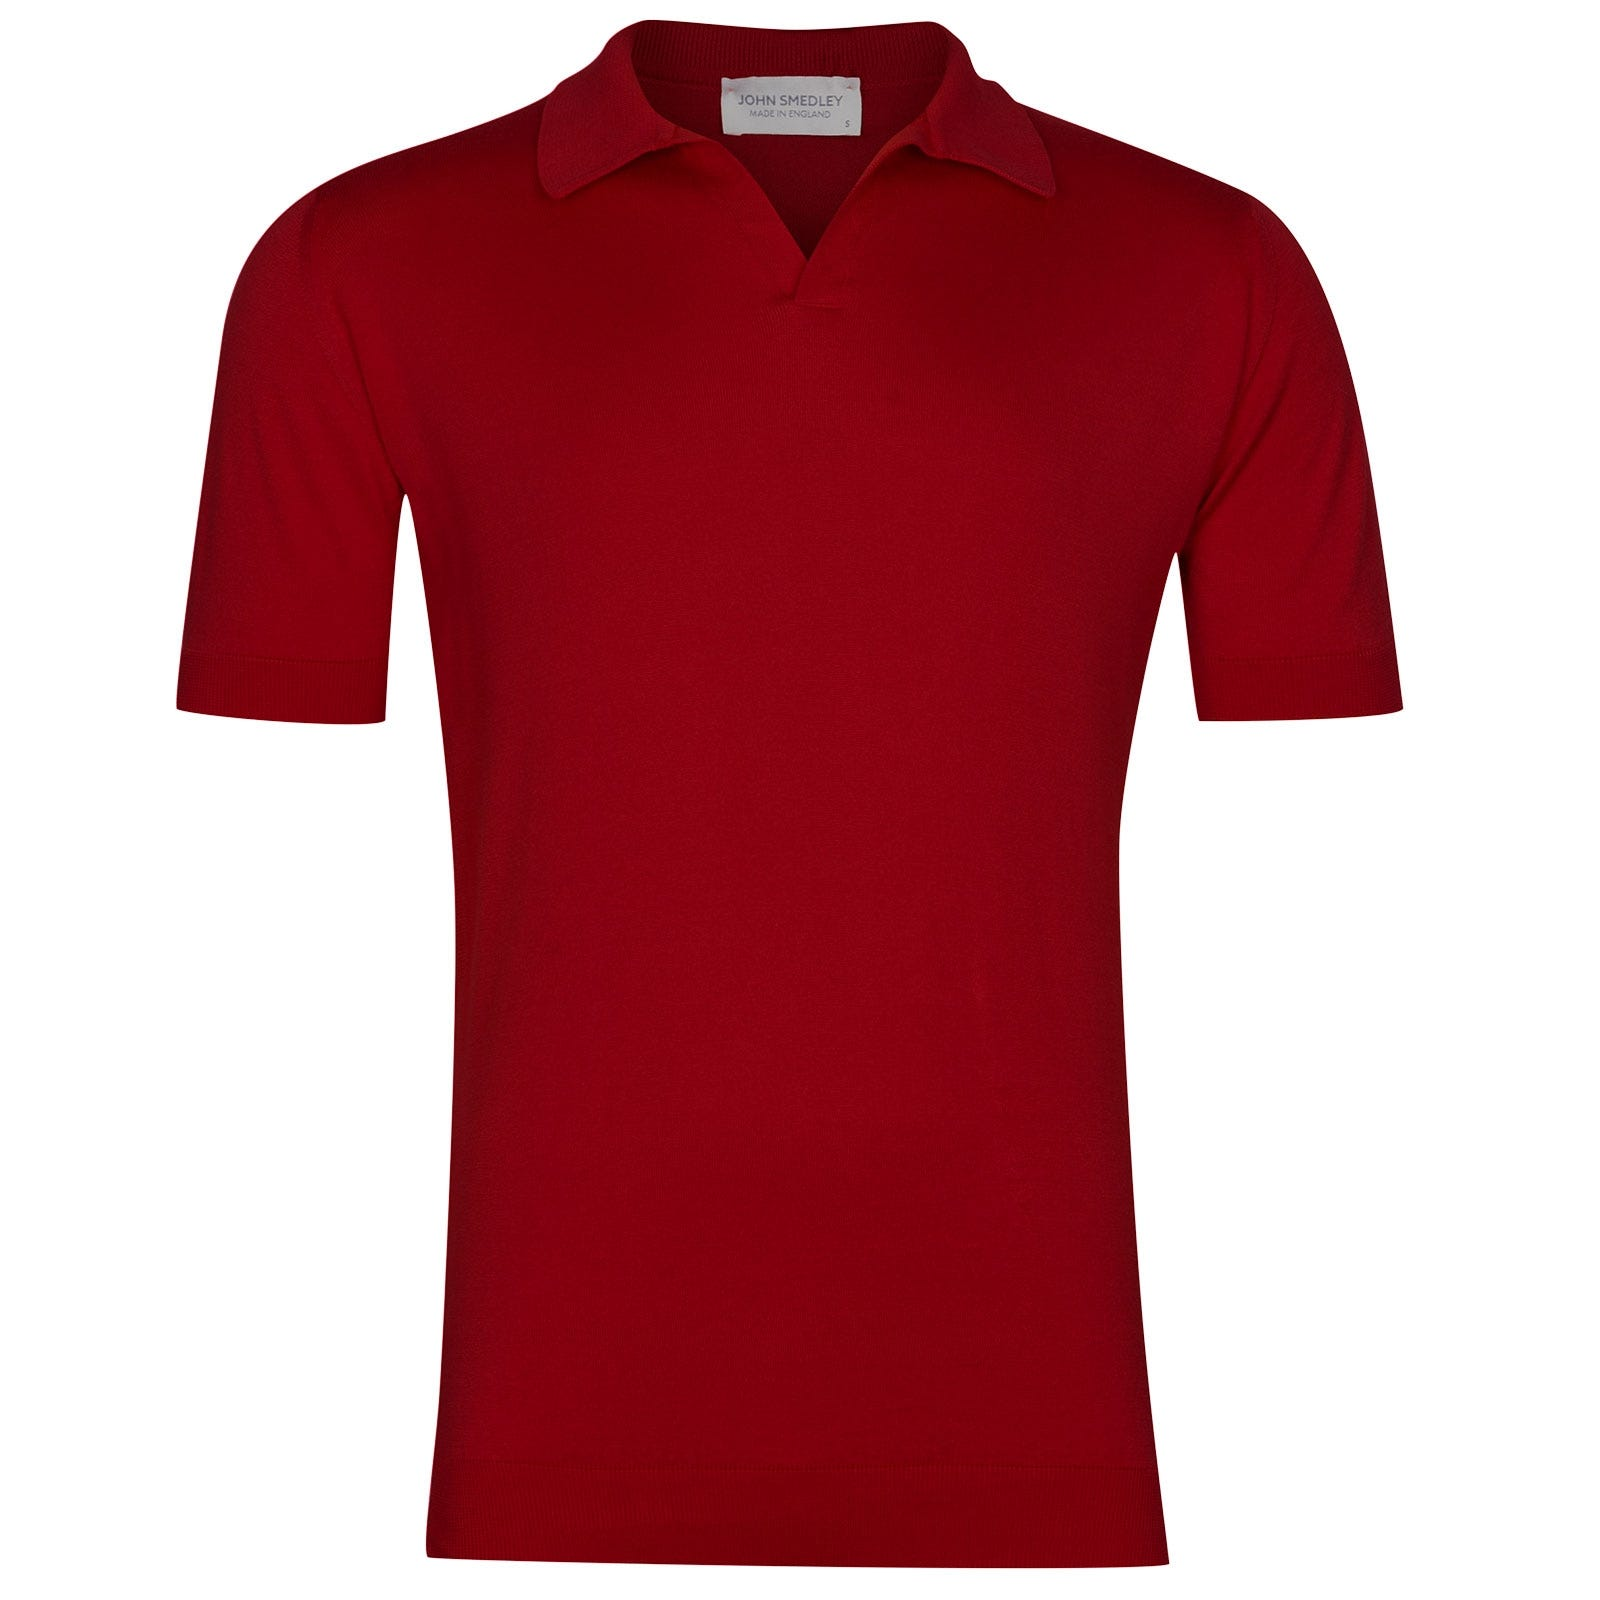 John Smedley Noah Sea Island Cotton Shirt in Dandy Red-S